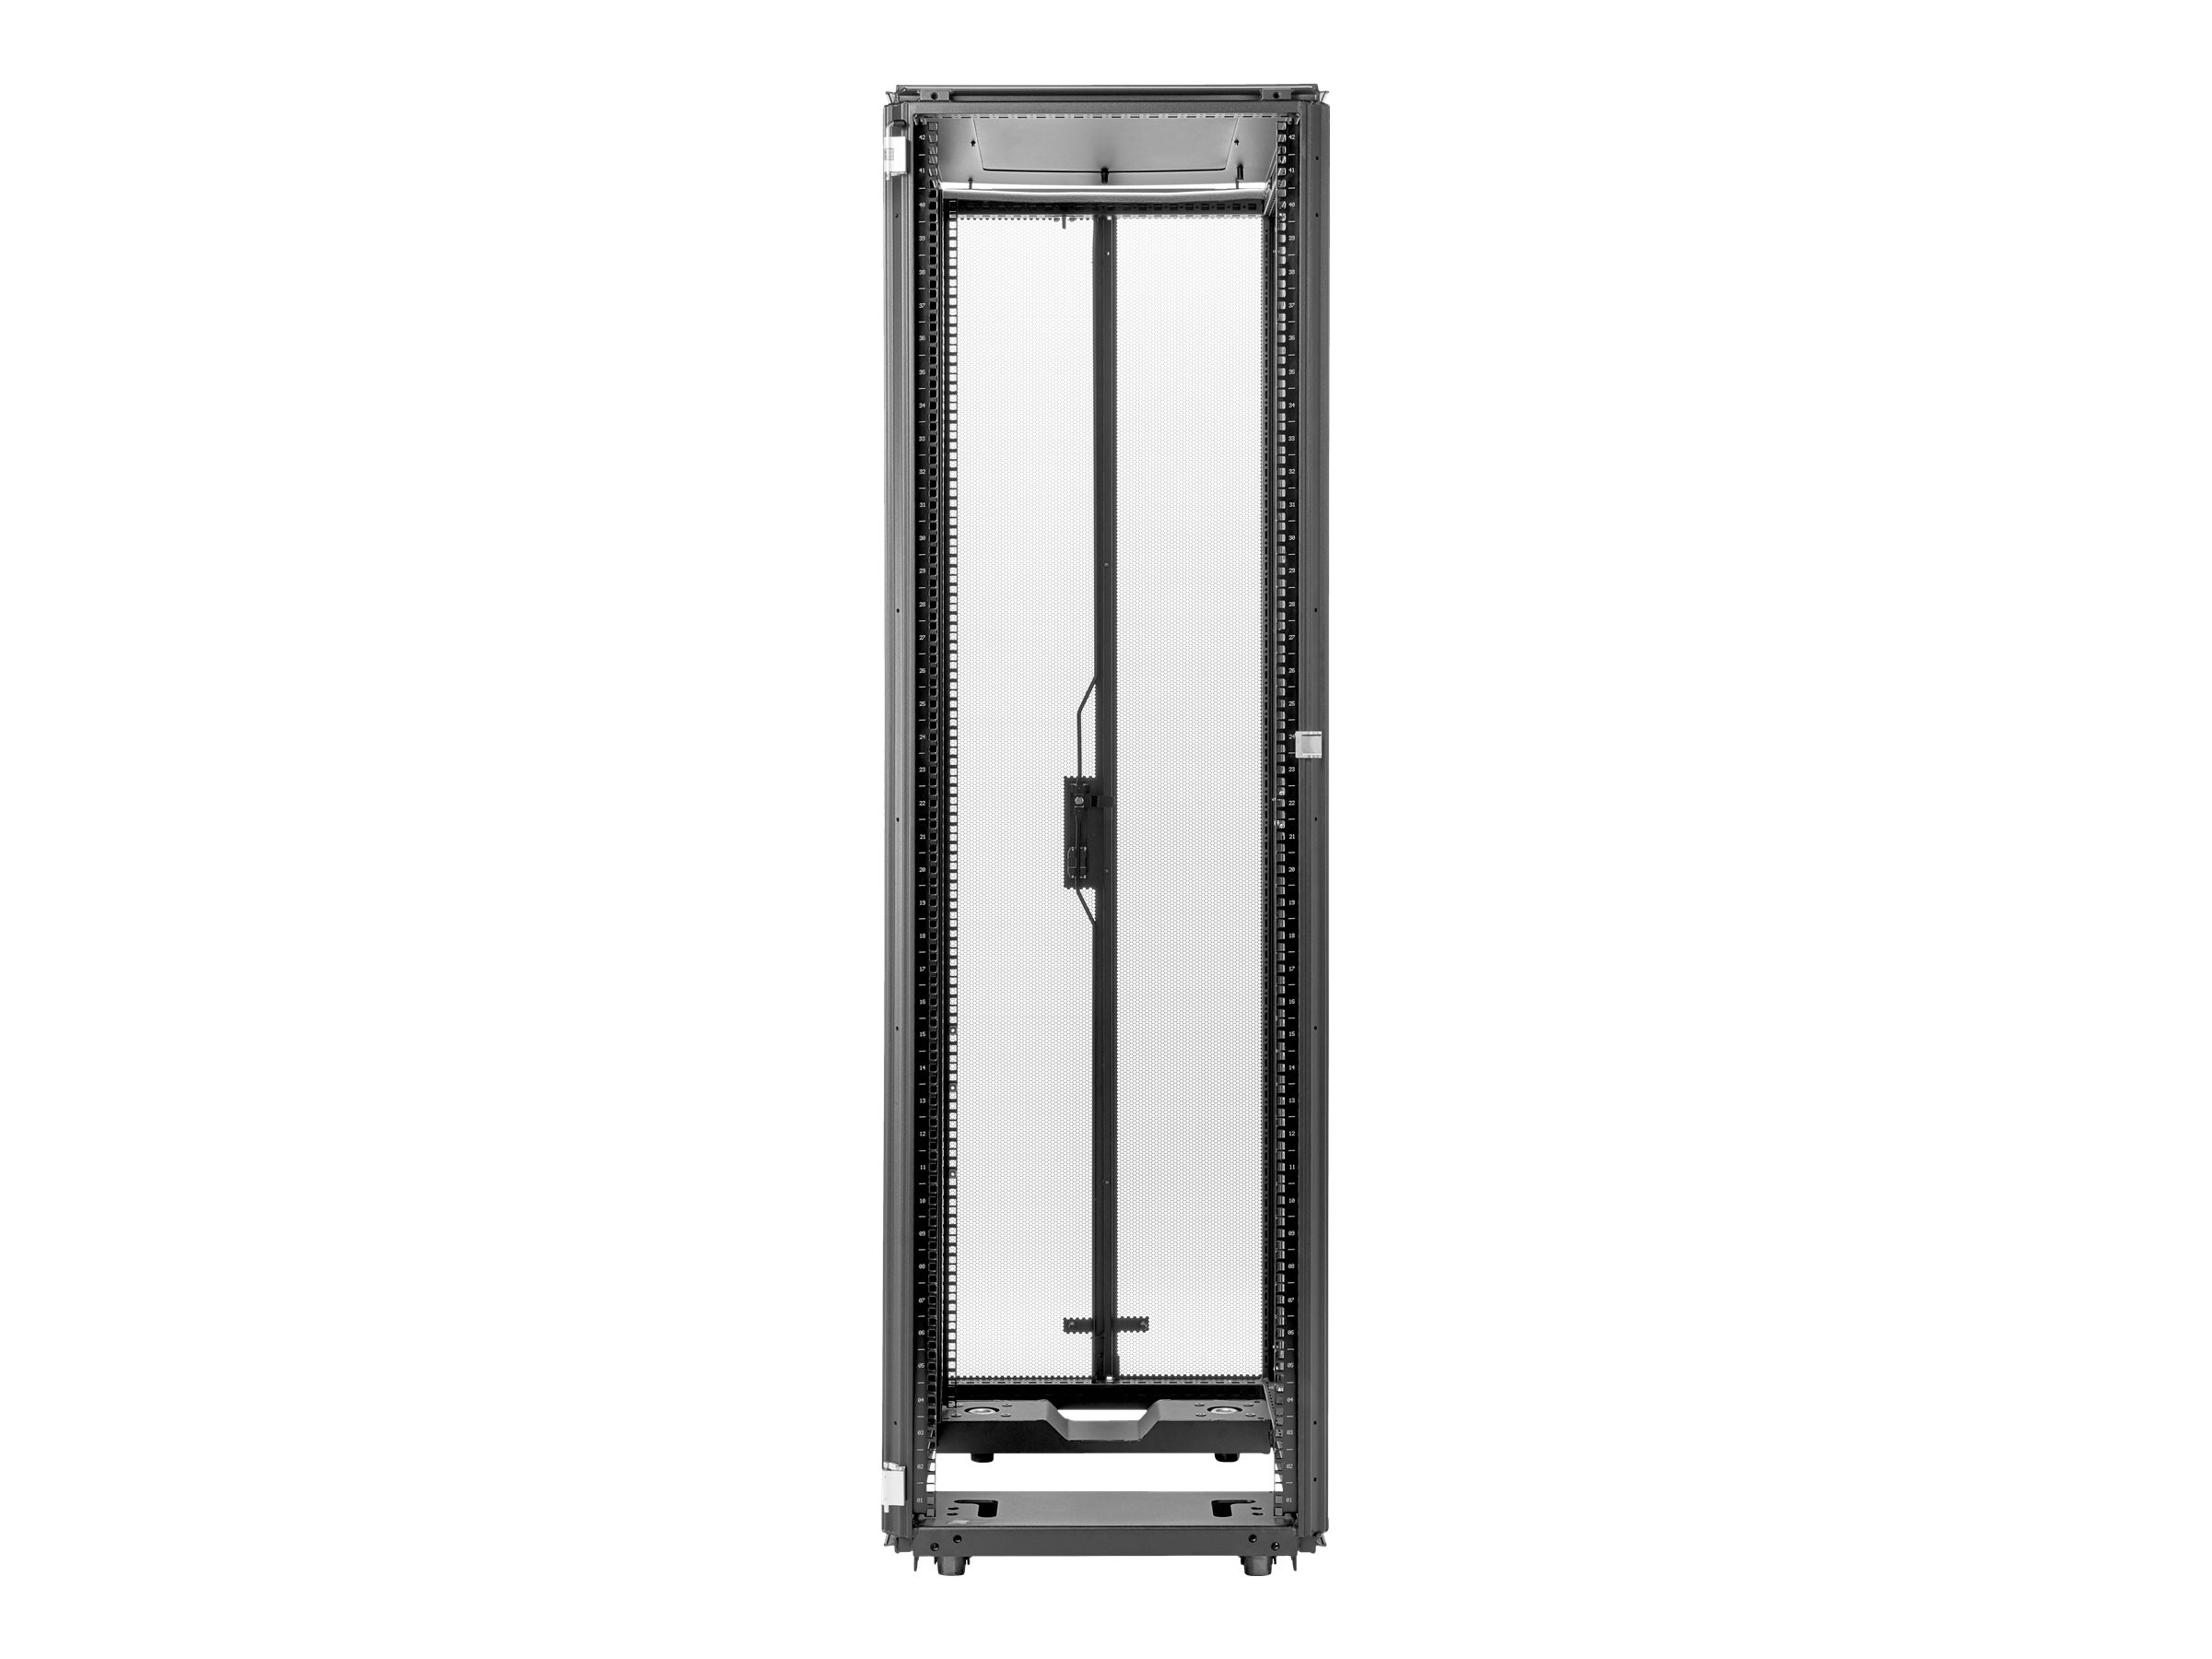 HPE 600mm x 1075mm G2 Kitted Advanced Pallet Rack - Schrank - Schwarz - 42U